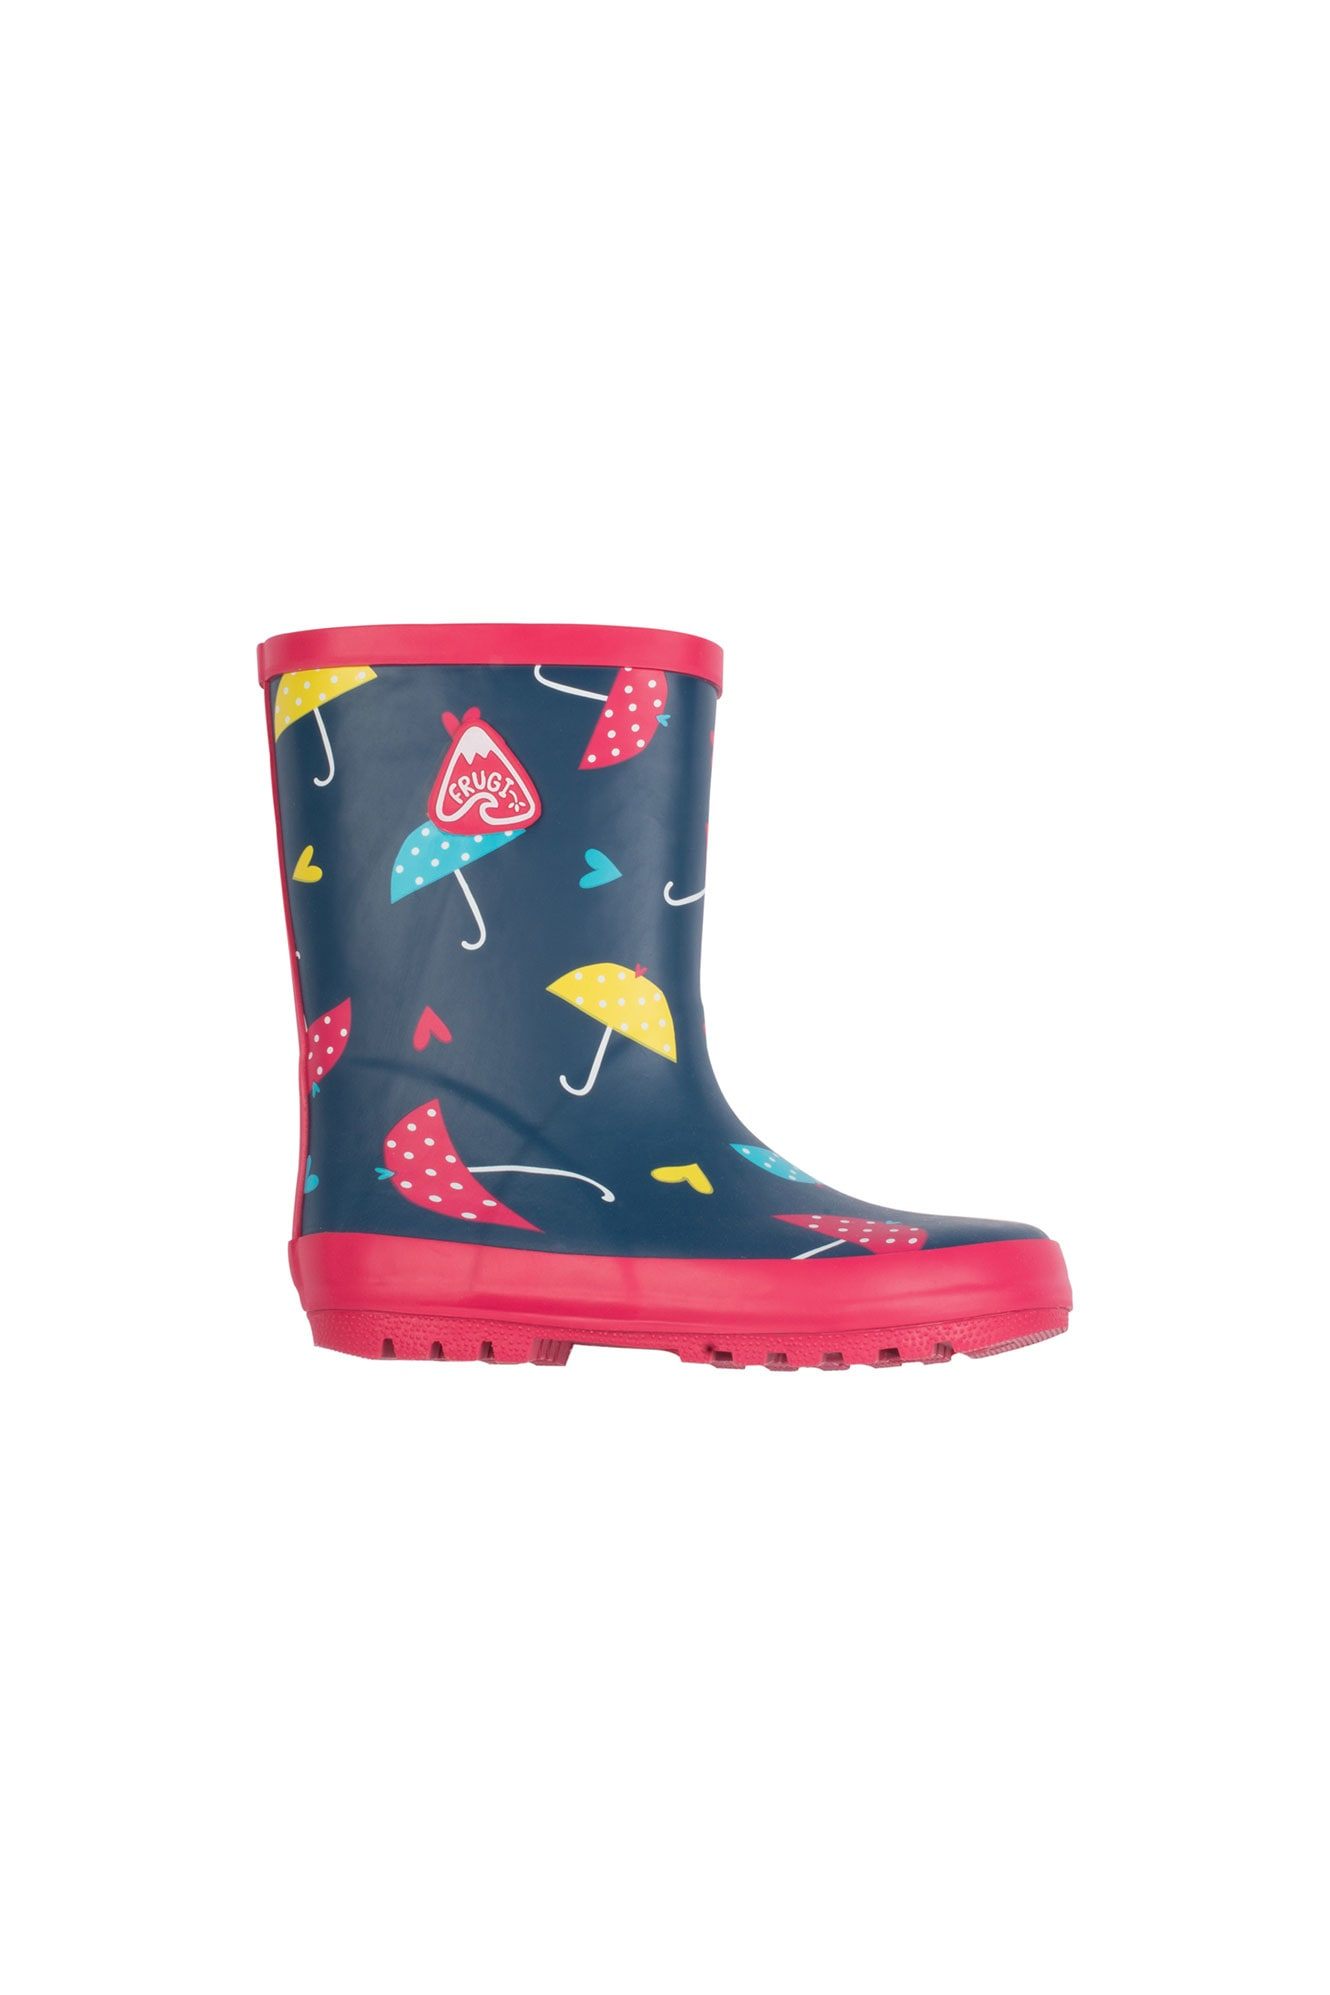 Children's Clothing Puddle Buster Wellington Boots